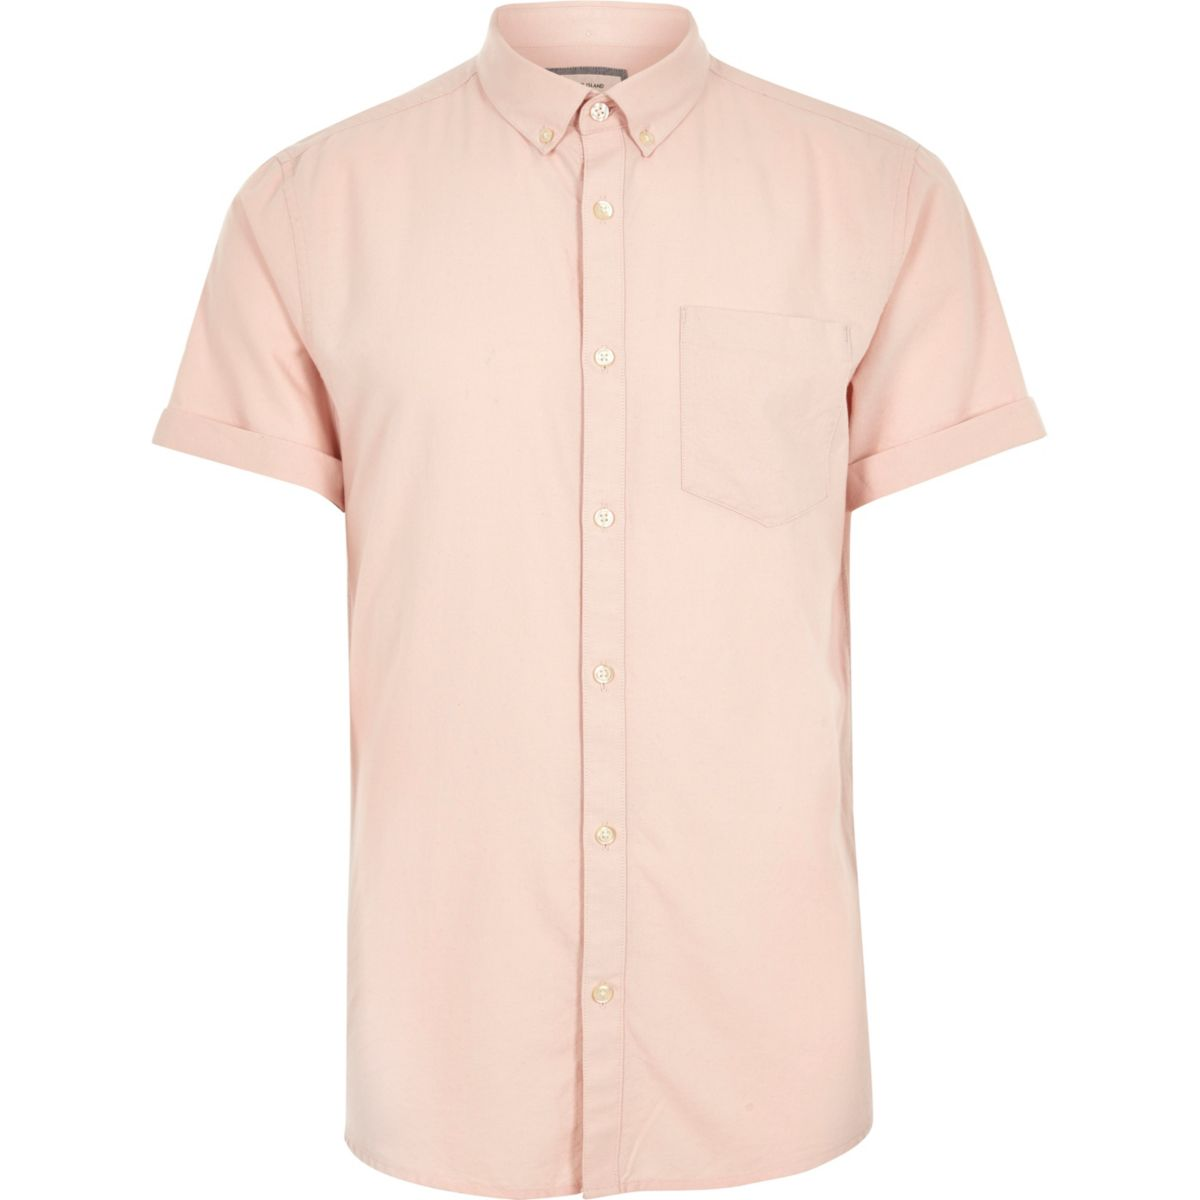 Pink short sleeve oxford shirt shirts sale men for Mens short sleeve oxford shirt